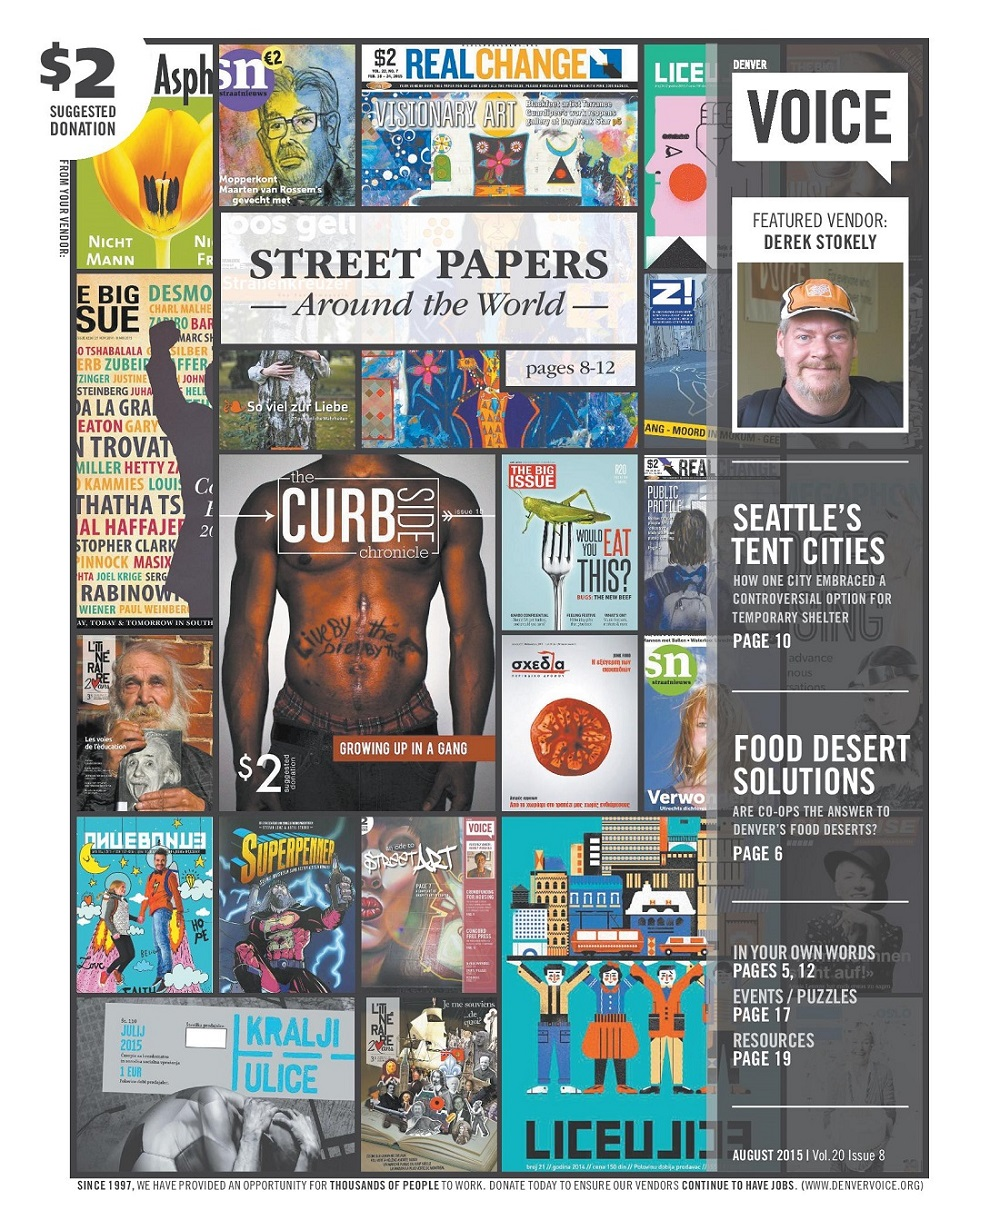 Denver Voice cover August 2015